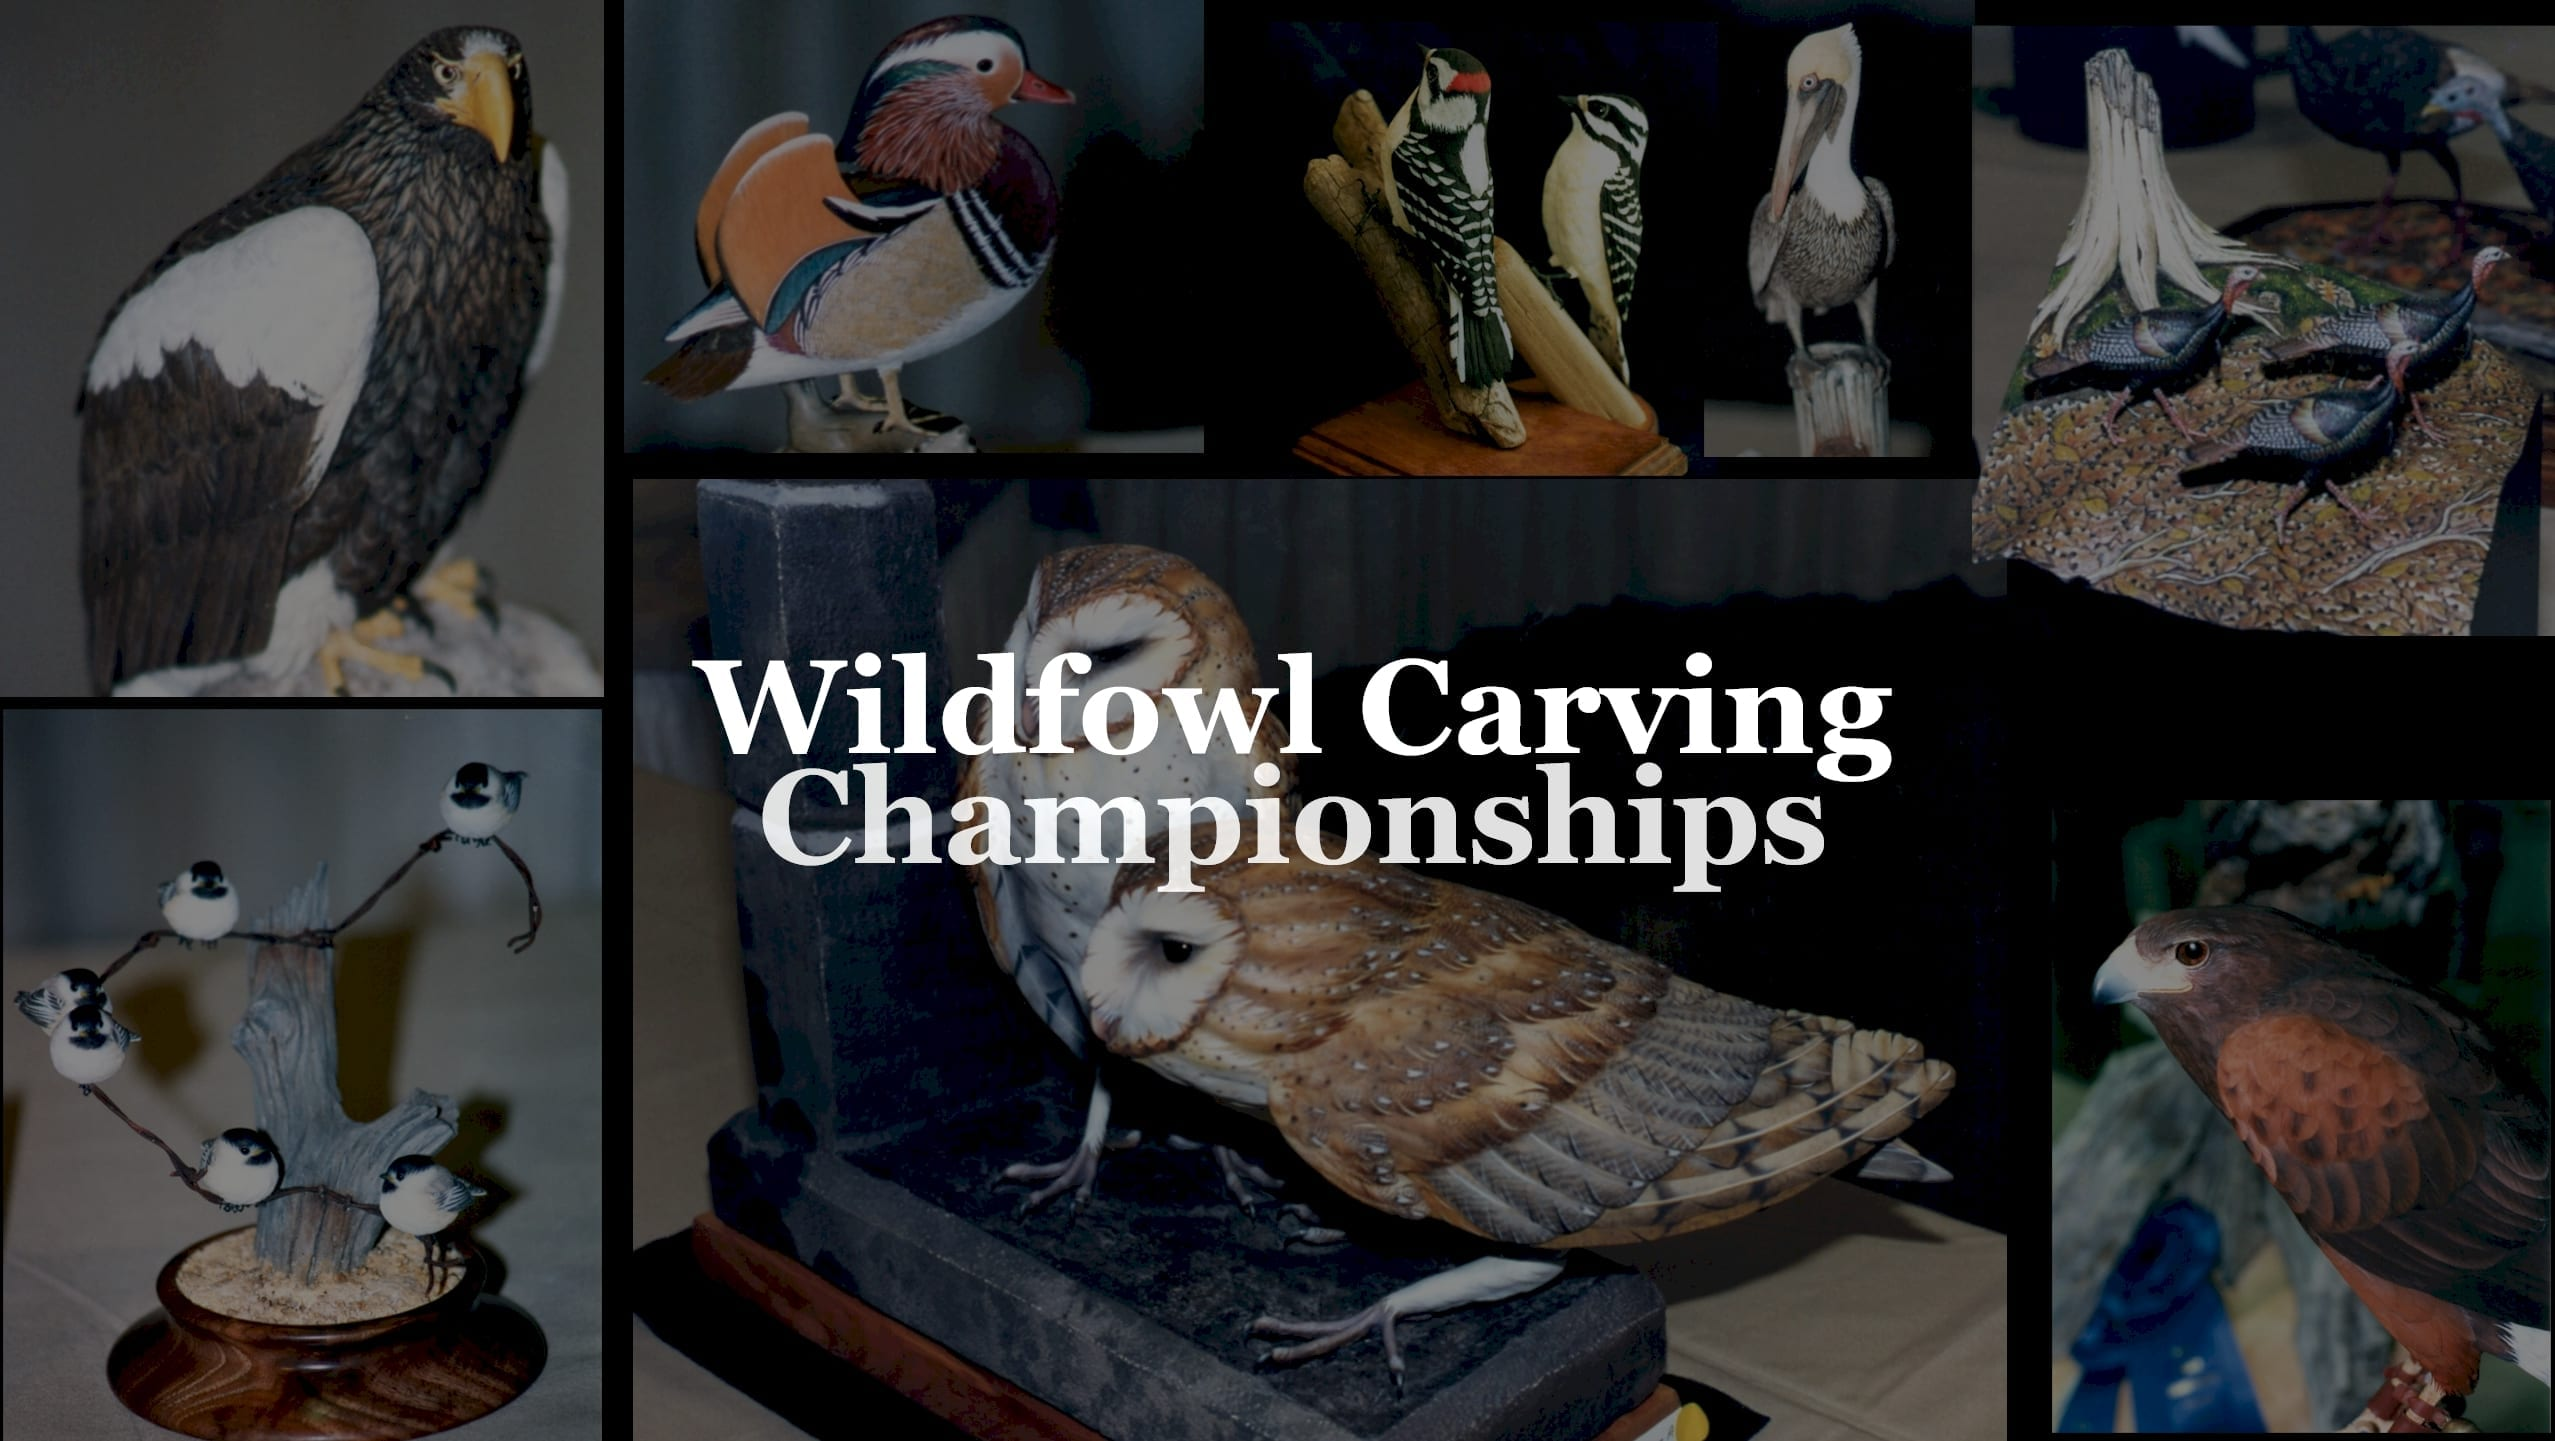 Wildfowl Carving Championships